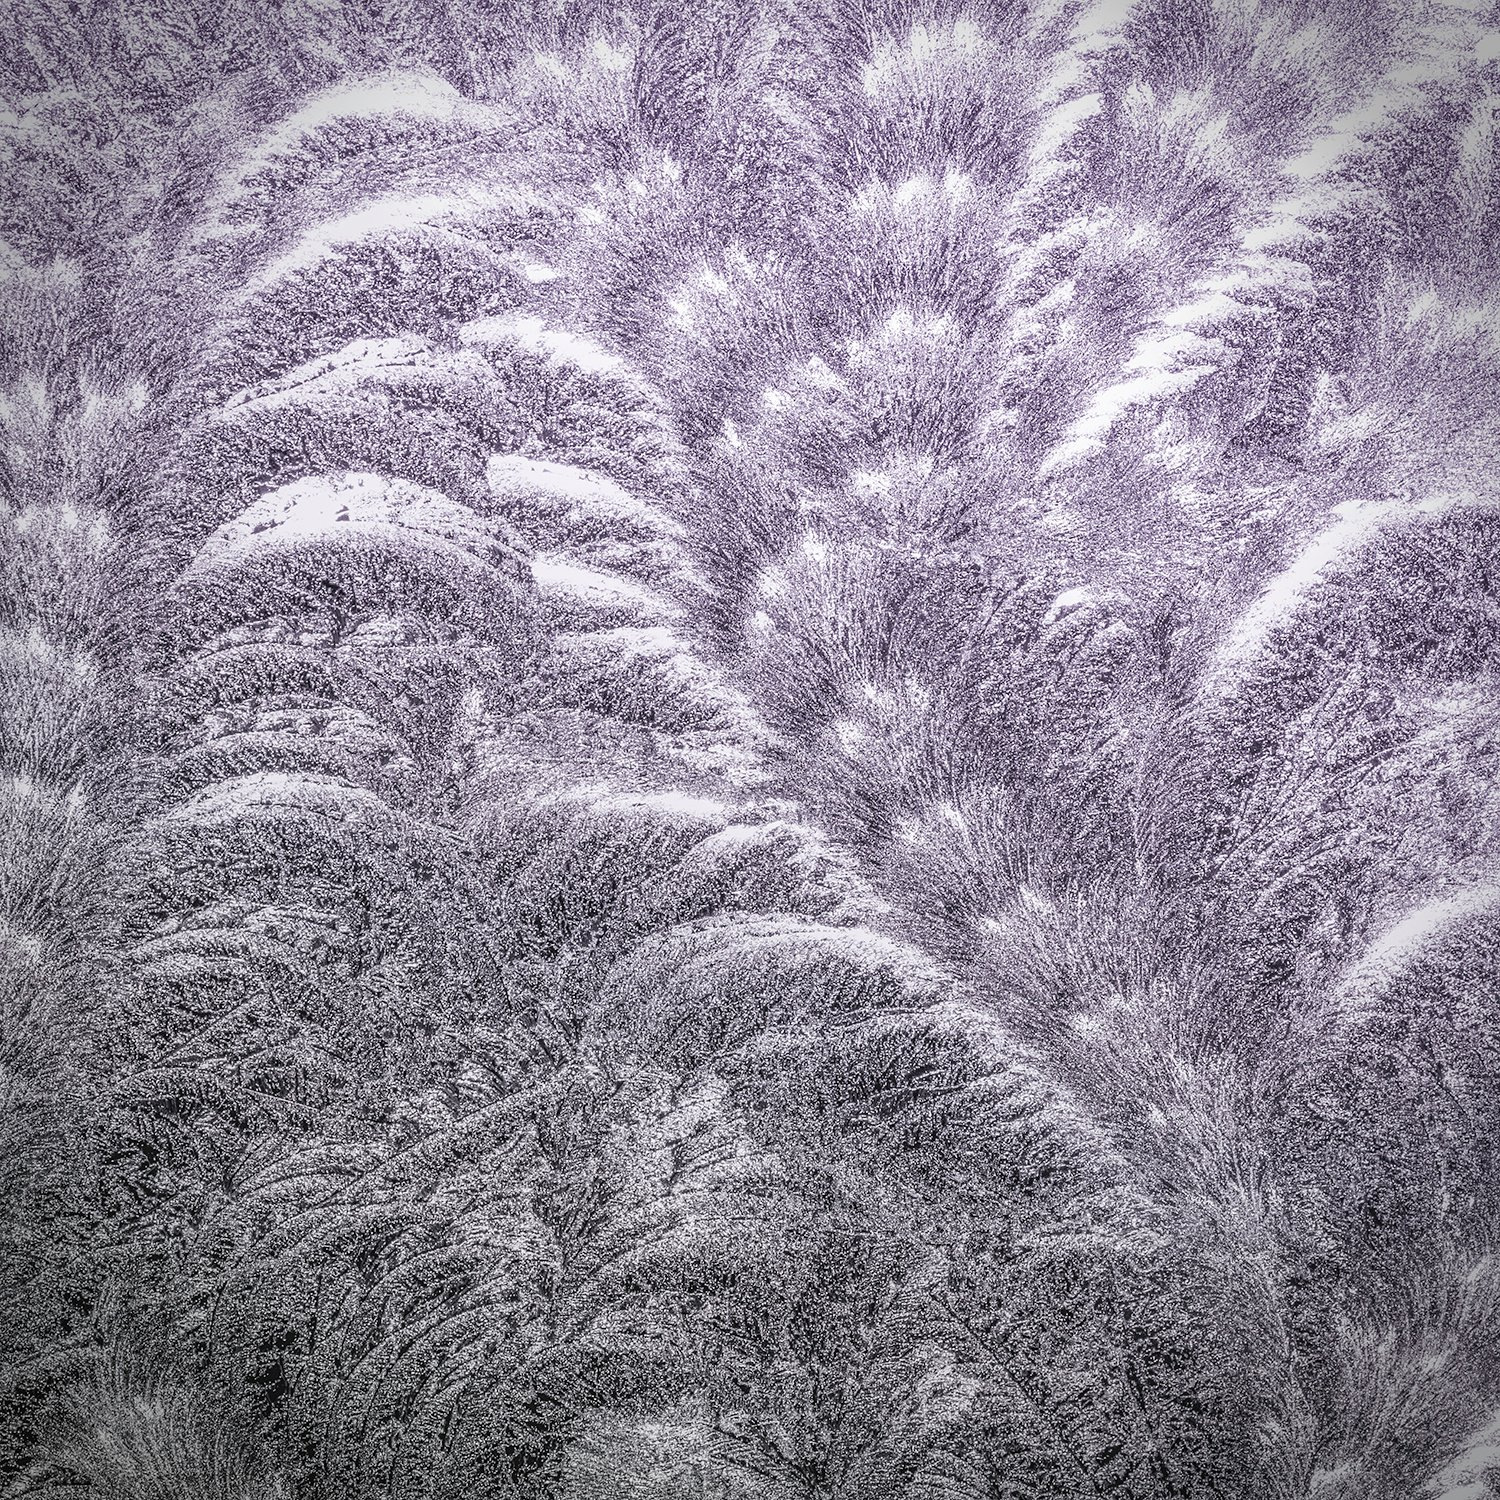 texture-textures-pressed-glass-frost-patterns-scroll-fern-lavender-purple-ombre-black-grey